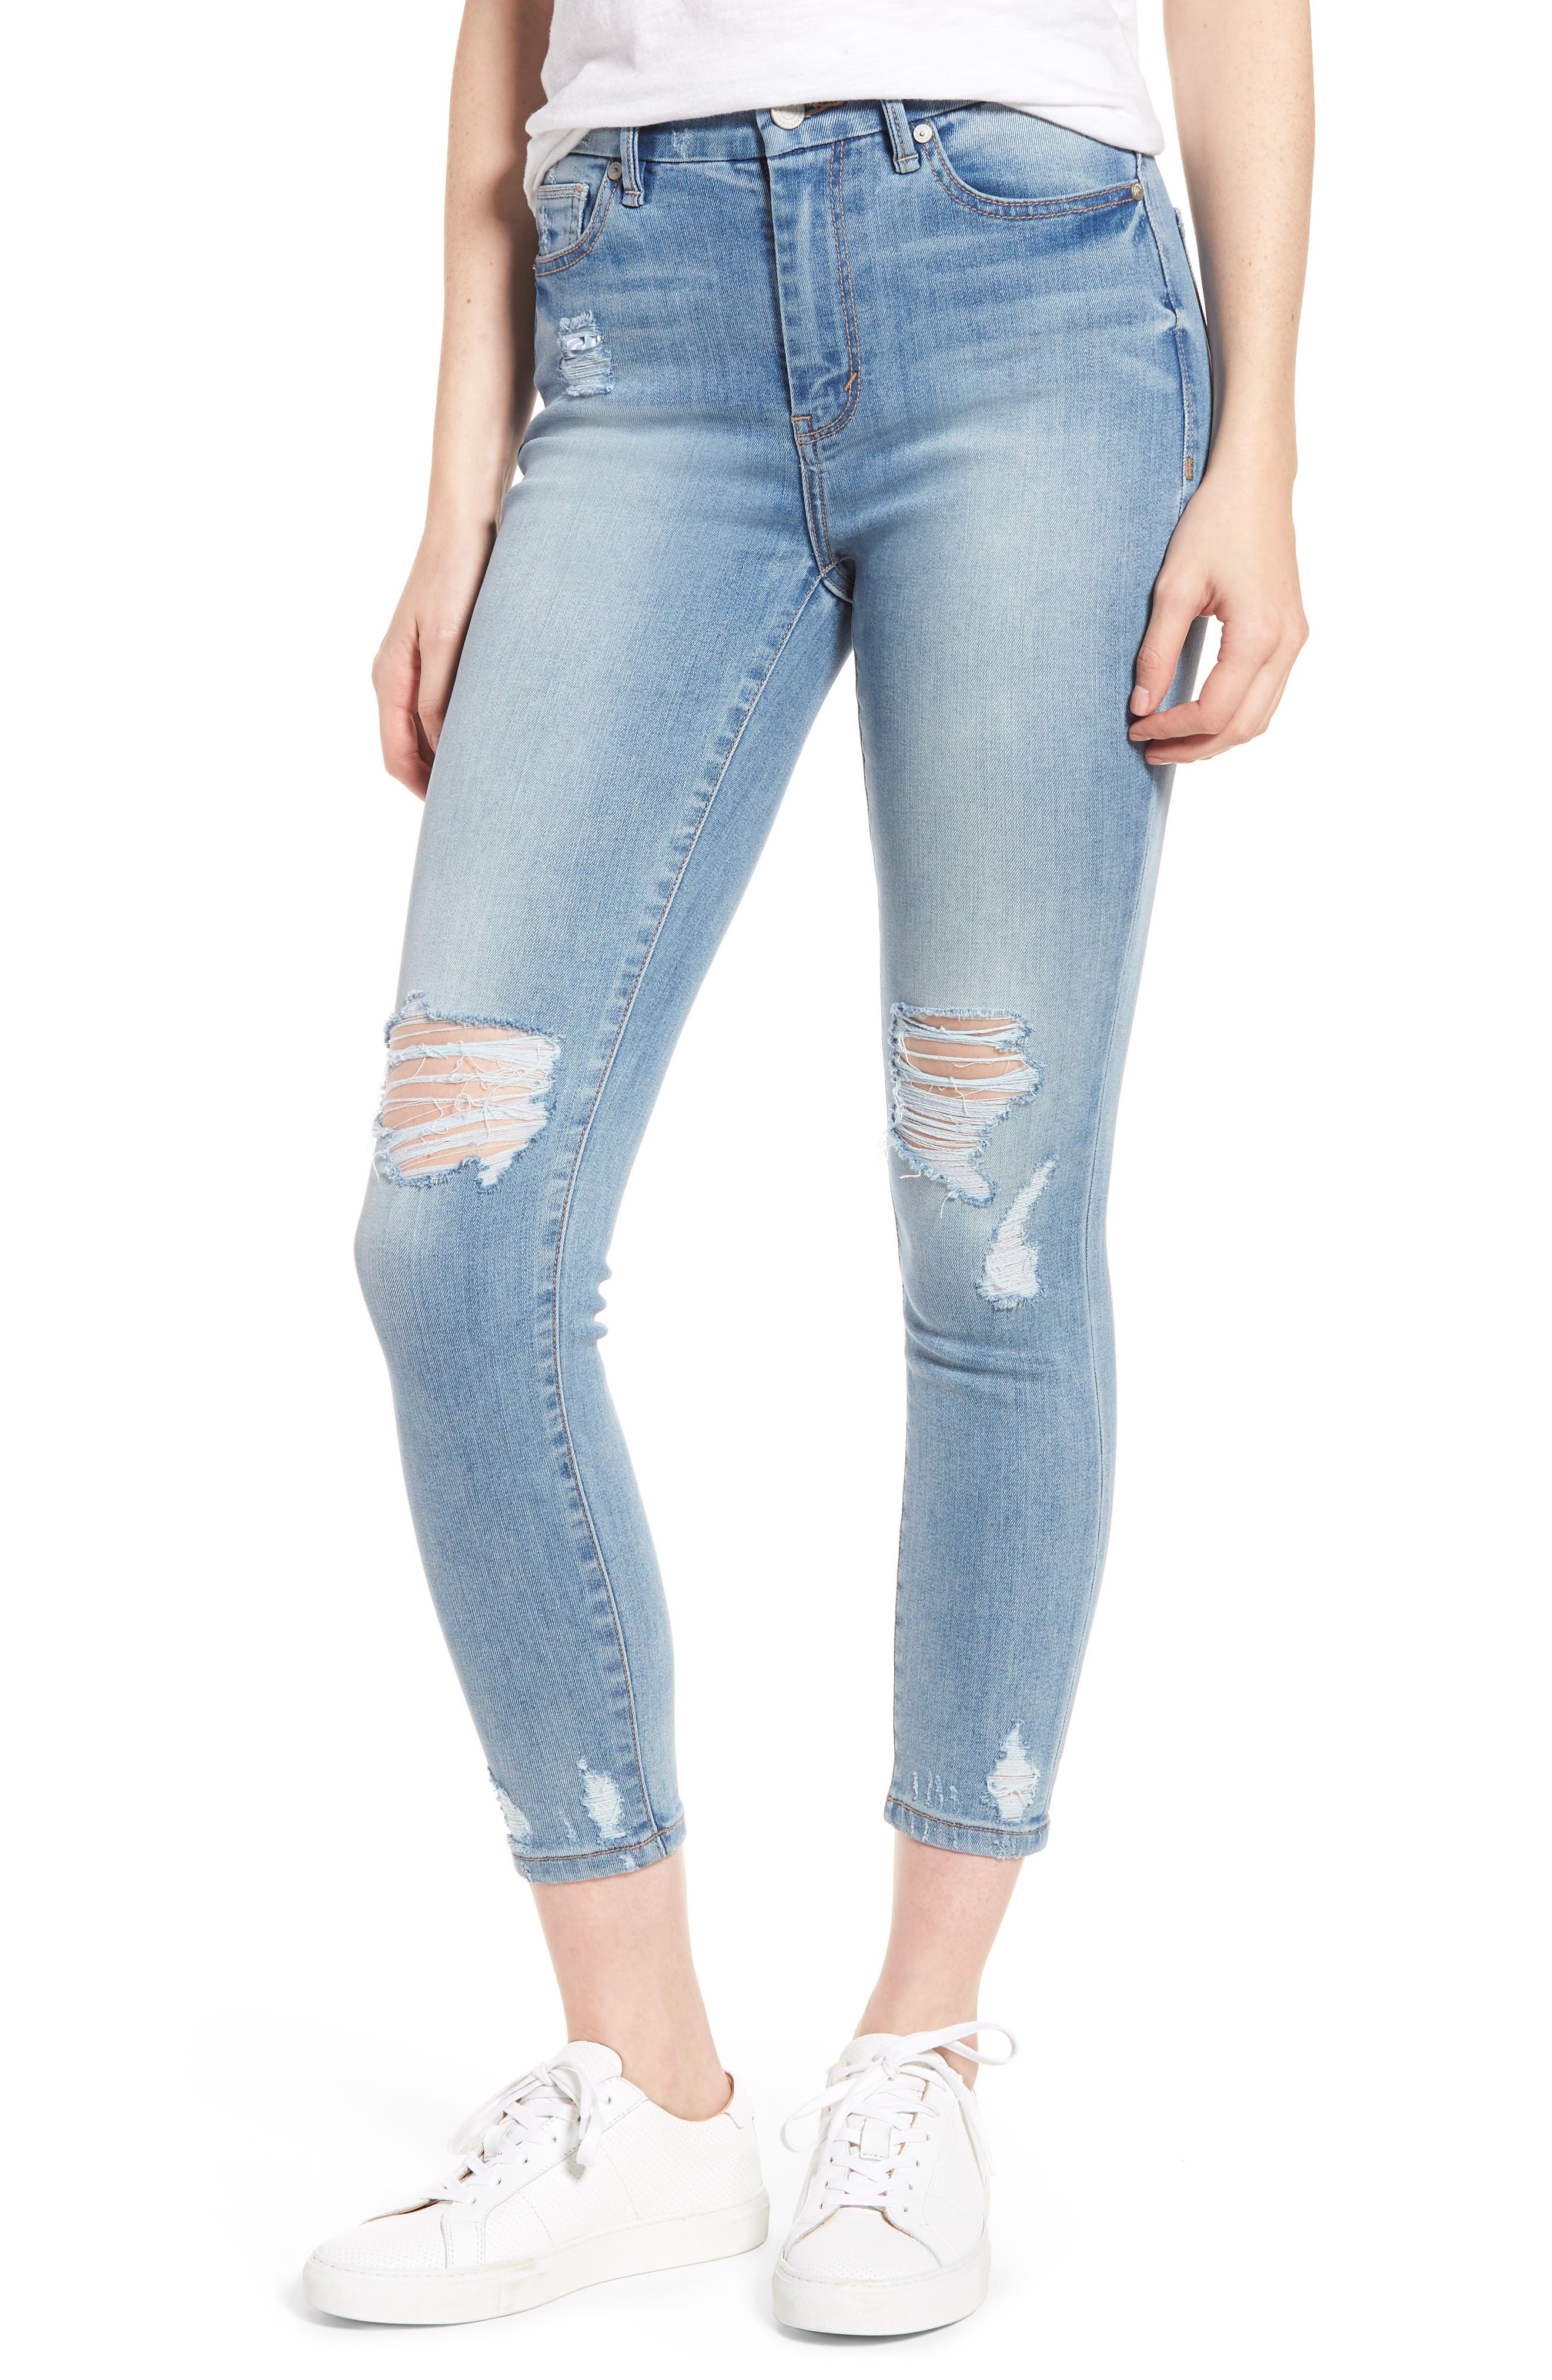 Cressa High Rise Ankle Skinny Jeans,                             Main thumbnail 1, color,                             Varnish